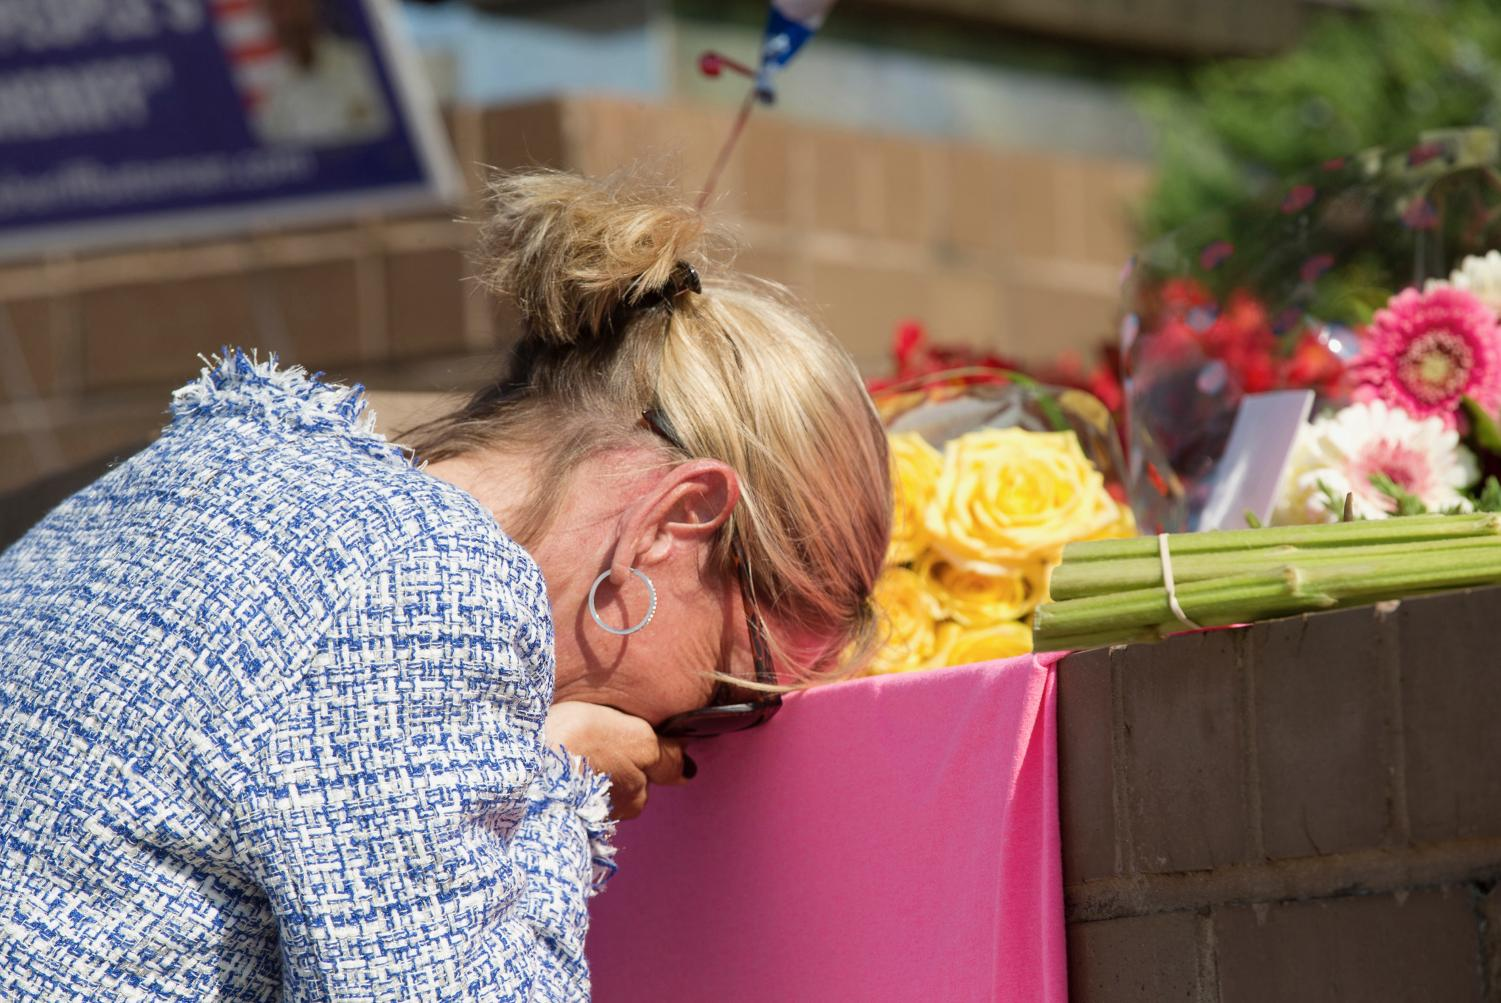 An unidentified mourner grieves at a small memorial set up at the entrance of 888 Bestgate Road on Friday, June 29, 2018. A gunman blasted his way into the Capital Gazette newsroom in Annapolis with a shotgun Thursday afternoon, killing five people and injuring two others, authorities said. (Jen Rynda/Capital Gazette/TNS)